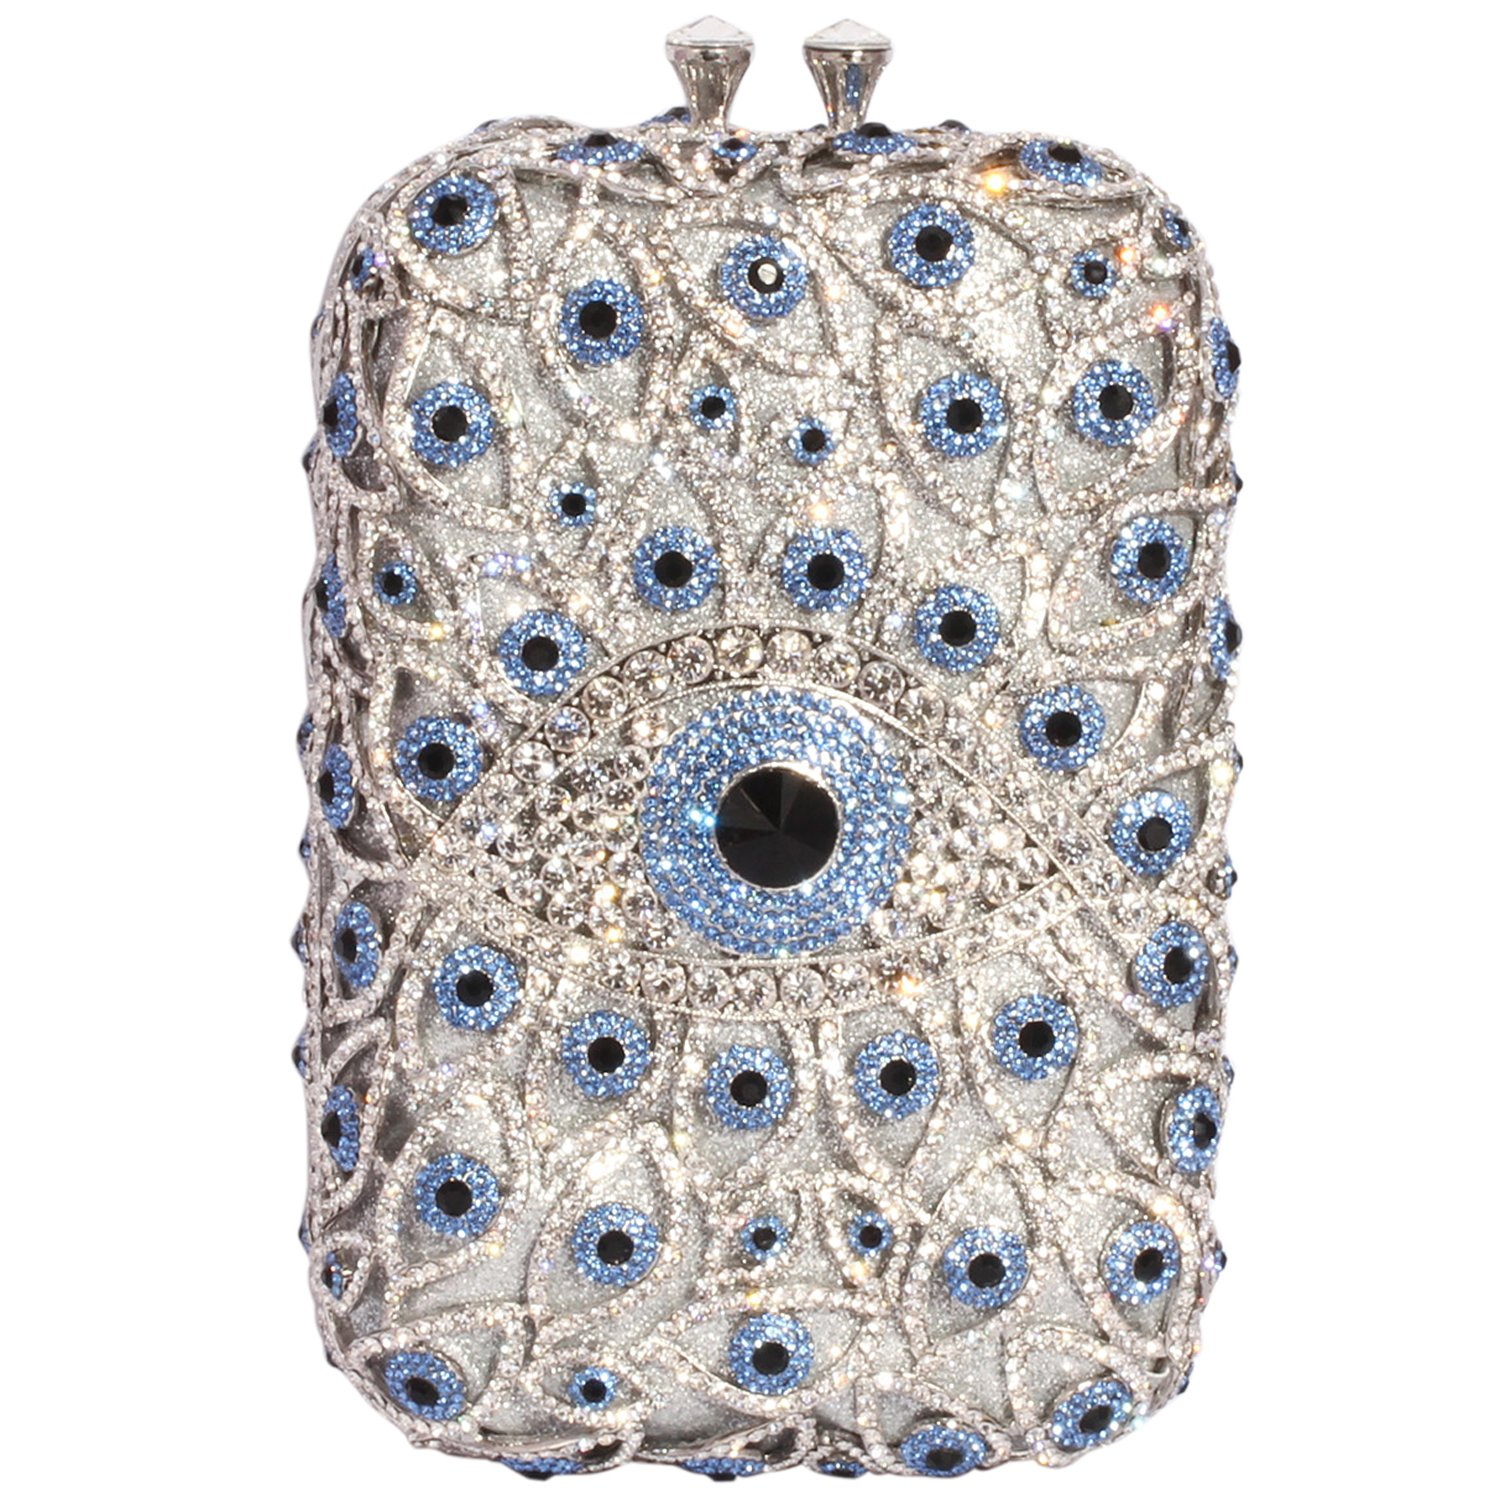 Digabi Eyes Rhinestone Purses Rectangle Shape Retro women Crystal Evening Clutch Bags (One Size : 4.72 IN (L) x 7.87 IN (H) x 2.6 IN (W), White and Sky Blue Crystal - Silver Plated)